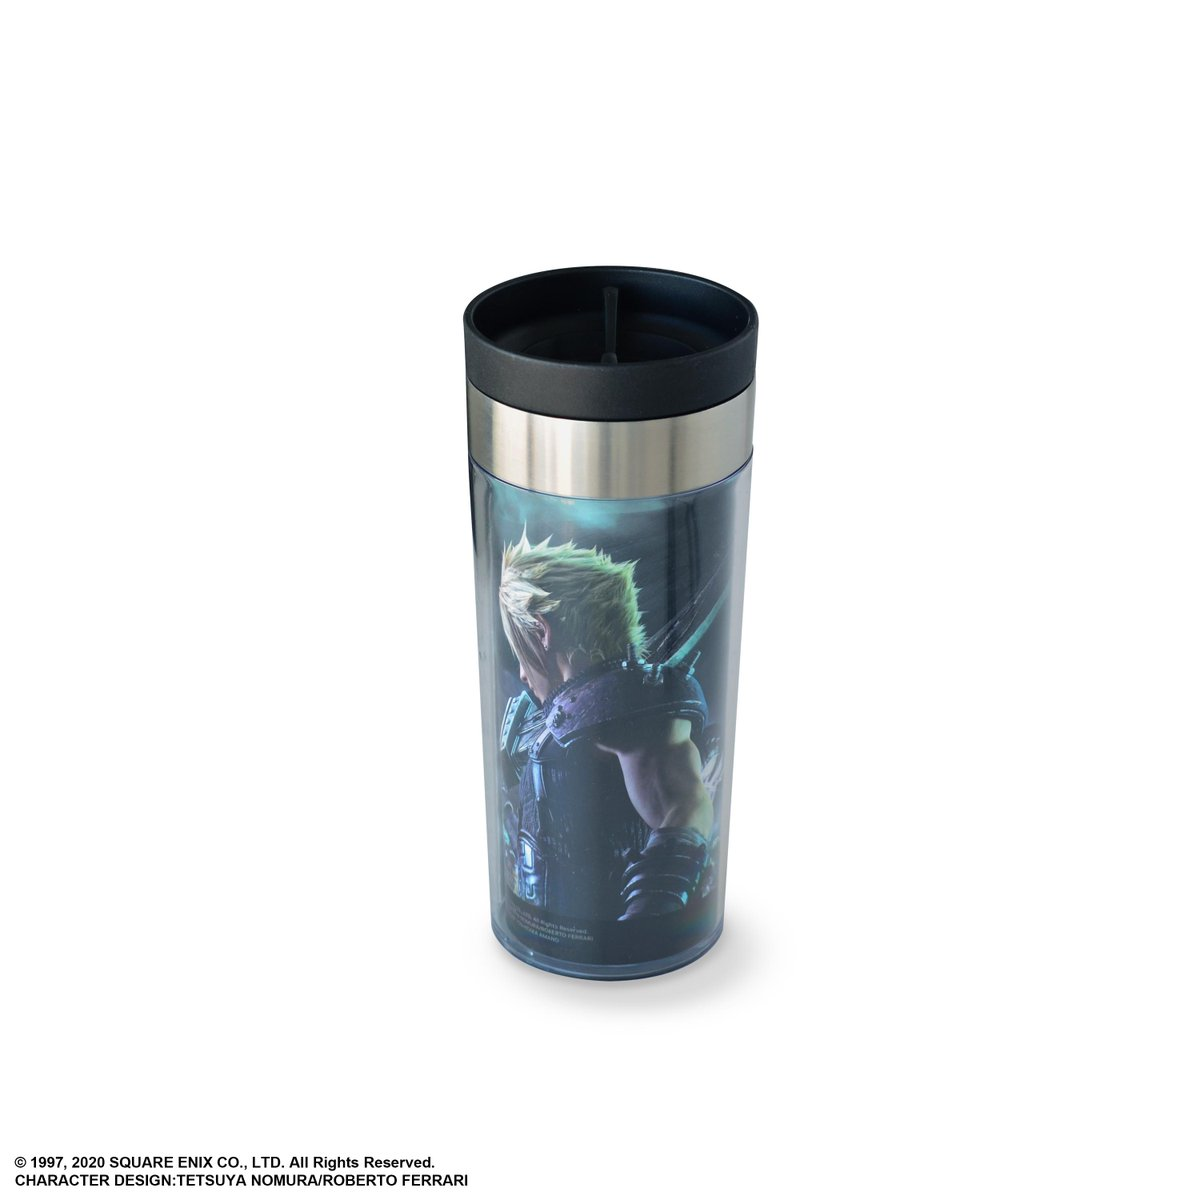 Presenting Metallic Art Tumblers, celebrating @finalfantasyvii Remake. With Cloud and Sephiroth designs, these make amazing gifts for FINAL FANTASY fans!  Pre-order on the @SquareEnix eStore by 2/6 for 10% off.  Cloud:  Sephiroth: